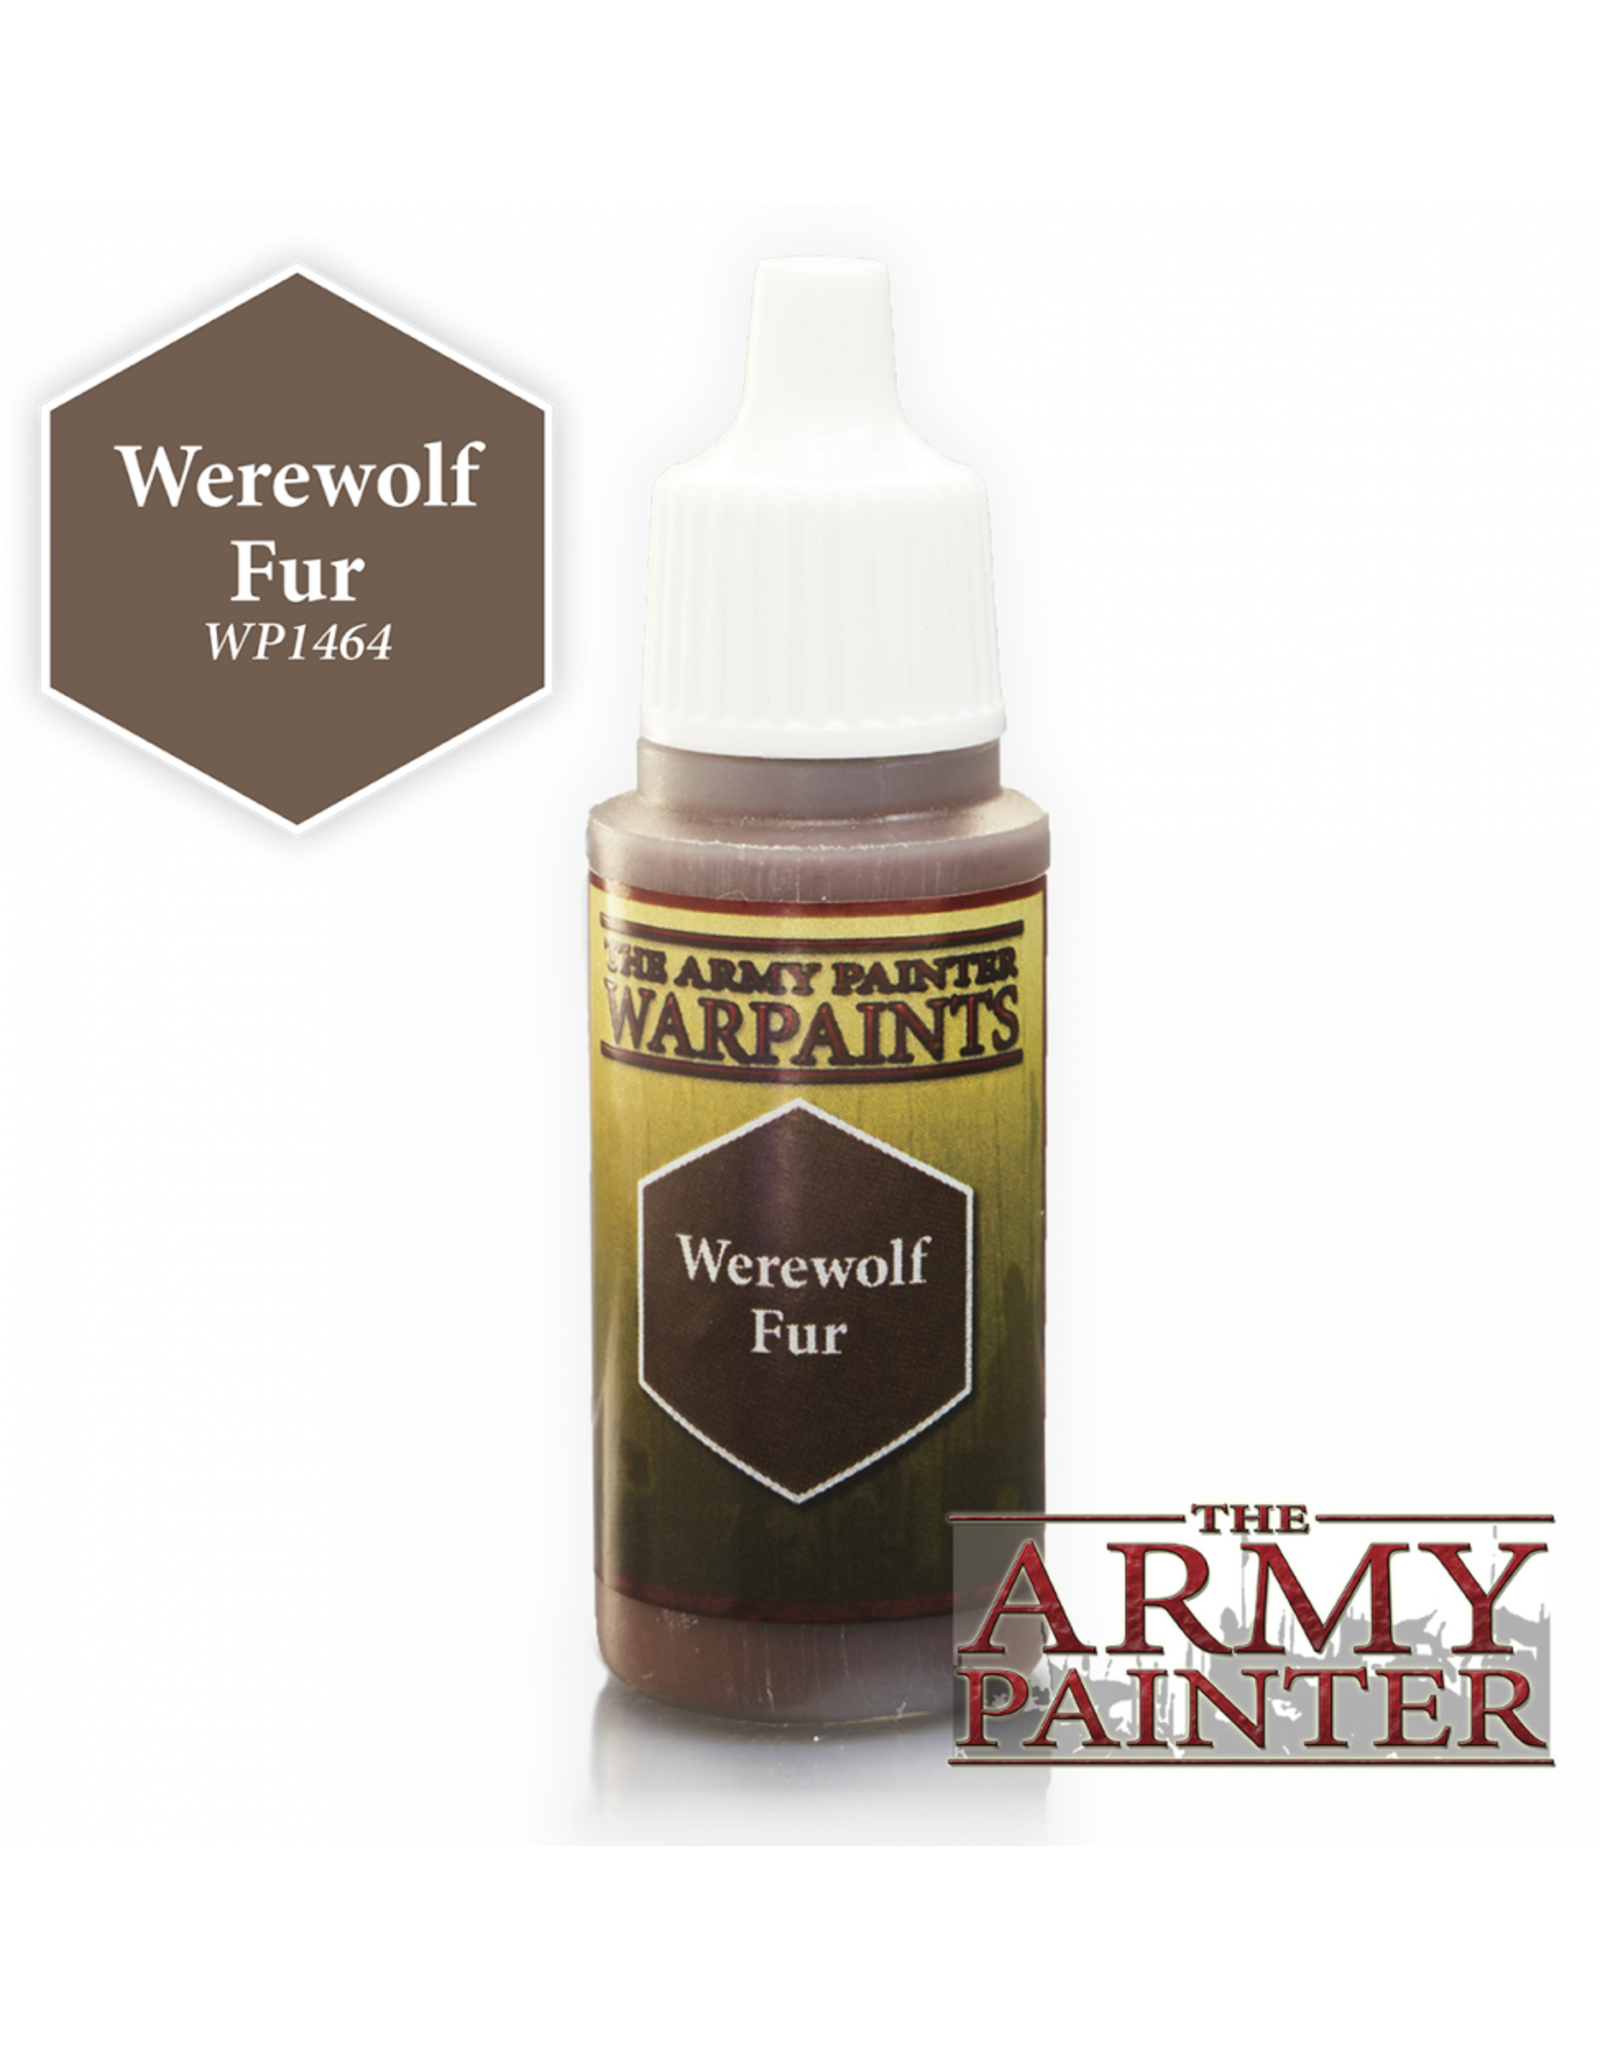 THE ARMY PAINTER ARMY PAINTER WARPAINTS WEREWOLF FUR